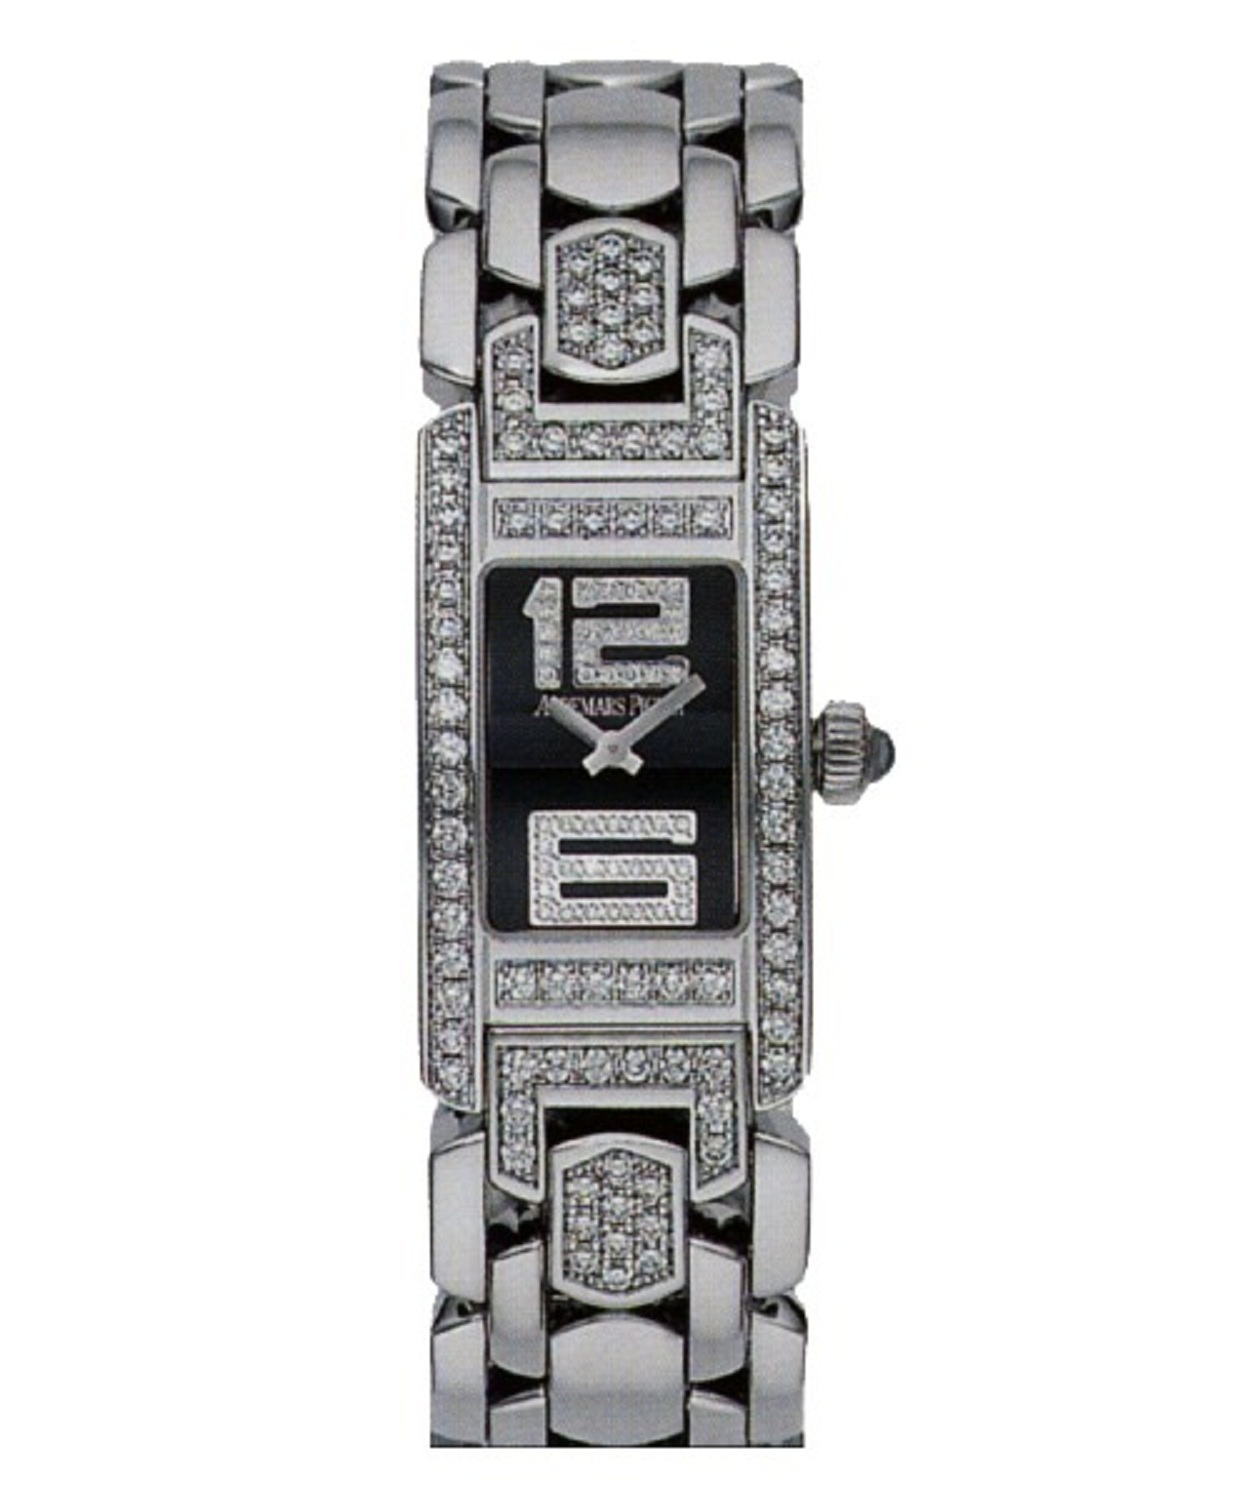 Audemars Piguet Promesse Mini in White Gold with Diamond Bezel